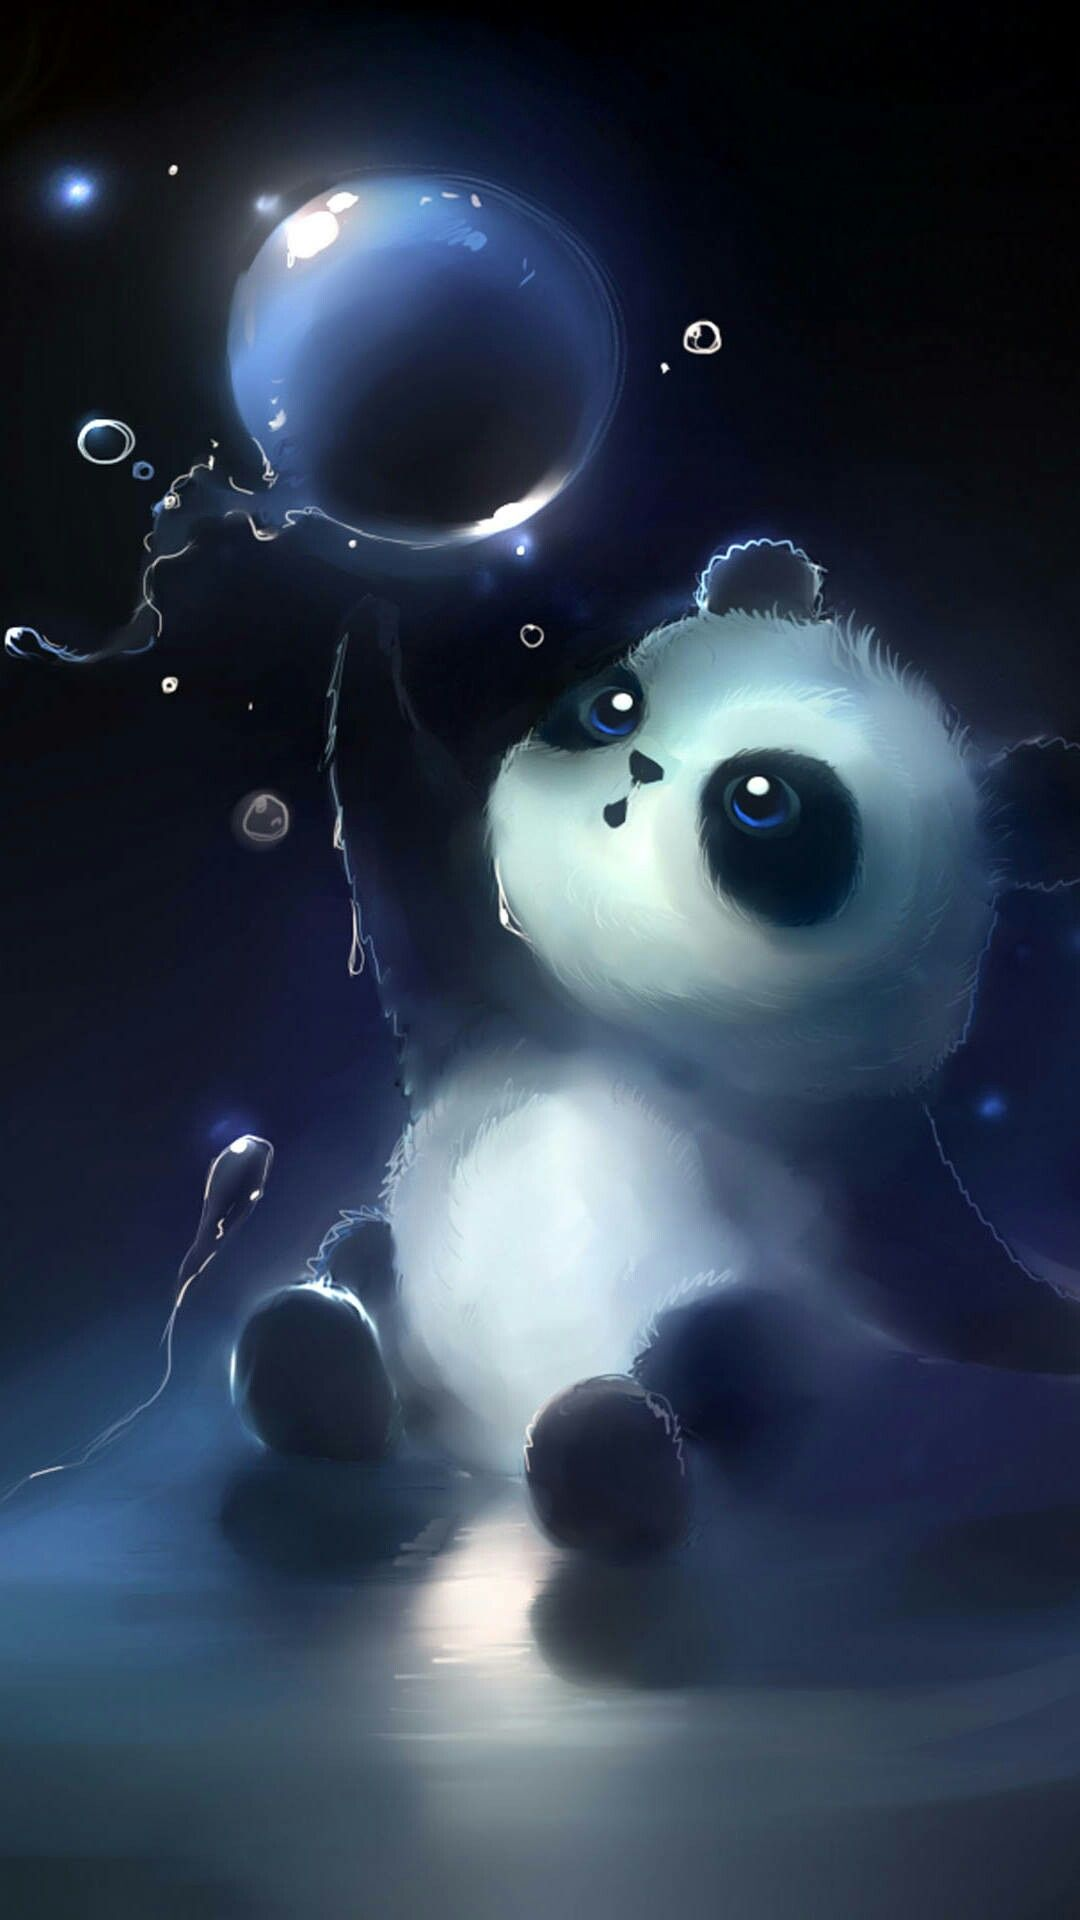 pinwang marx on design | pinterest | panda, wallpaper and gif